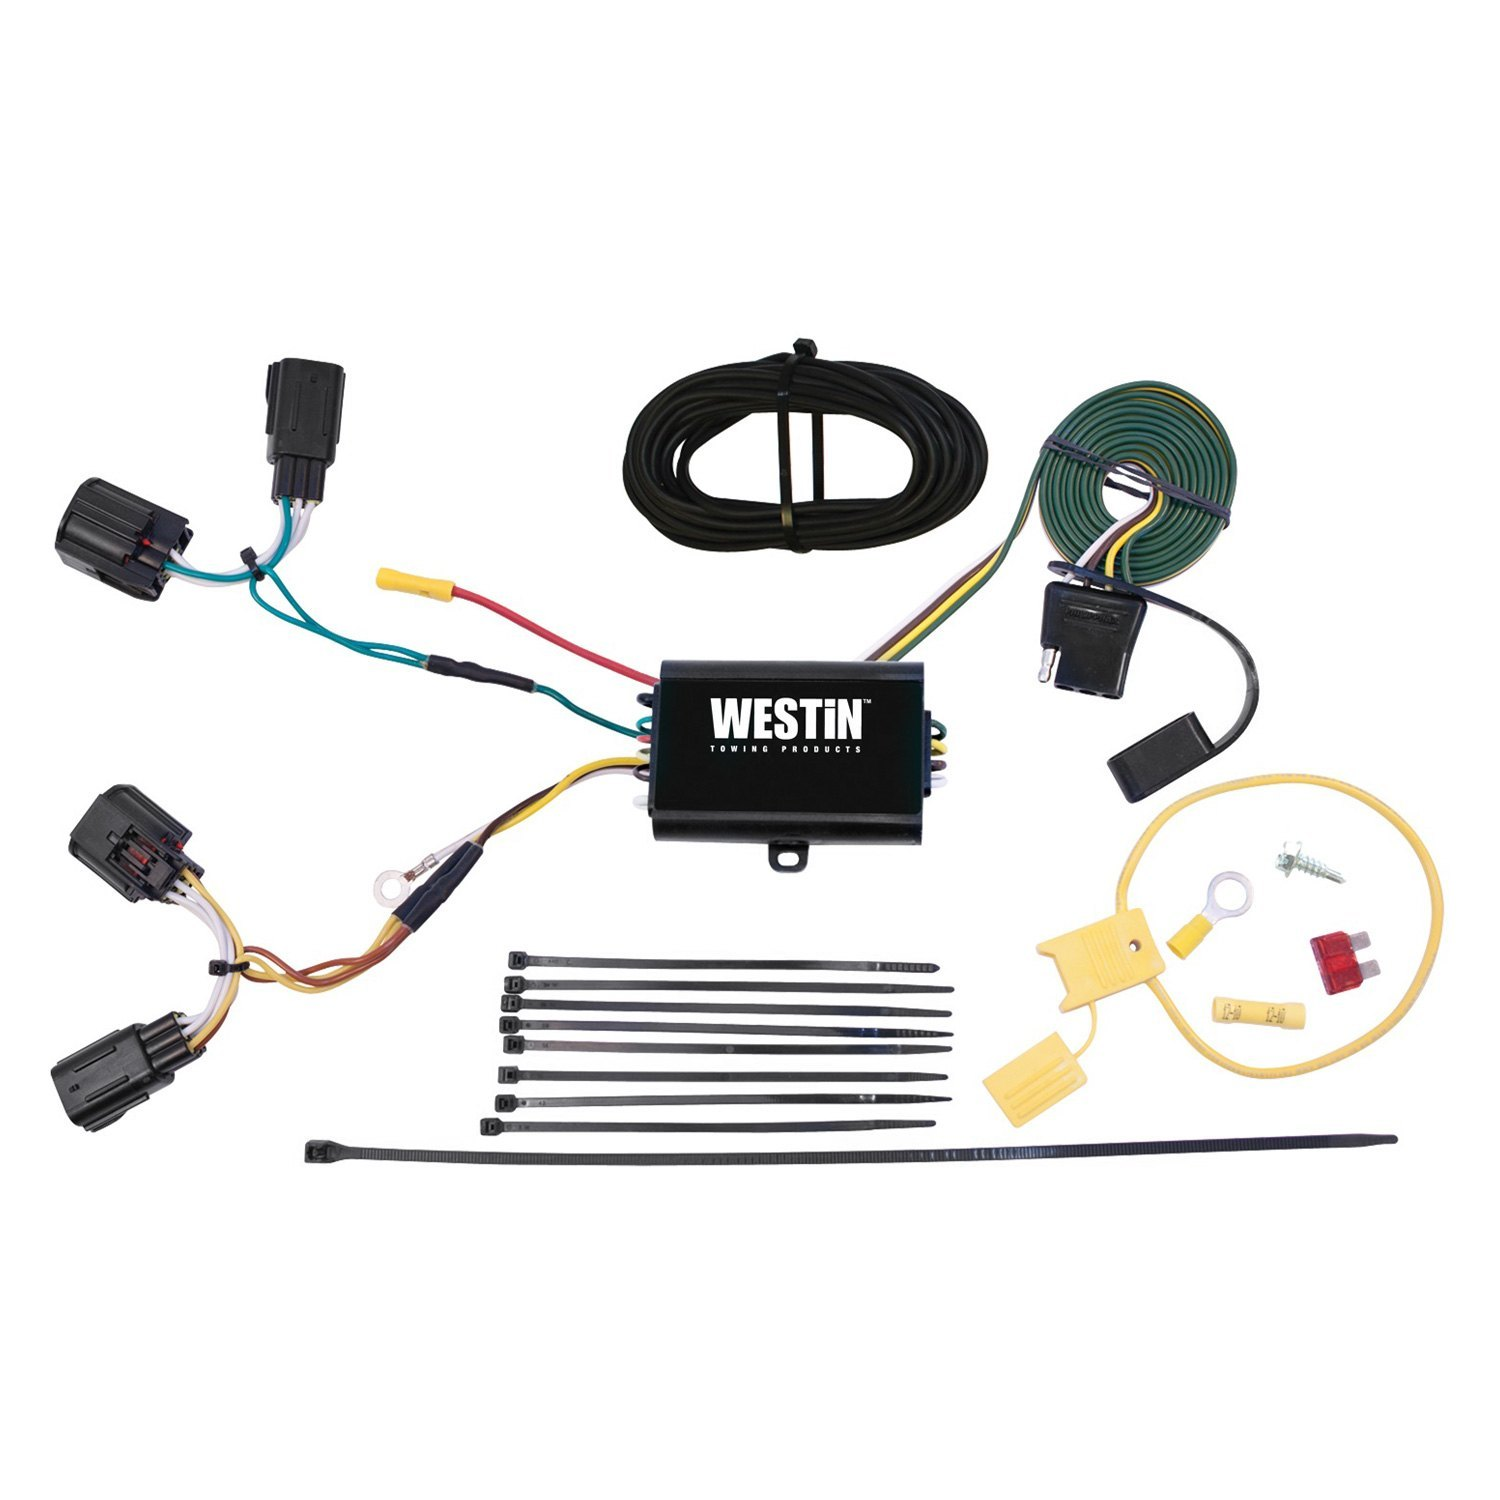 westin 65 61029 towing wiring harness. Black Bedroom Furniture Sets. Home Design Ideas